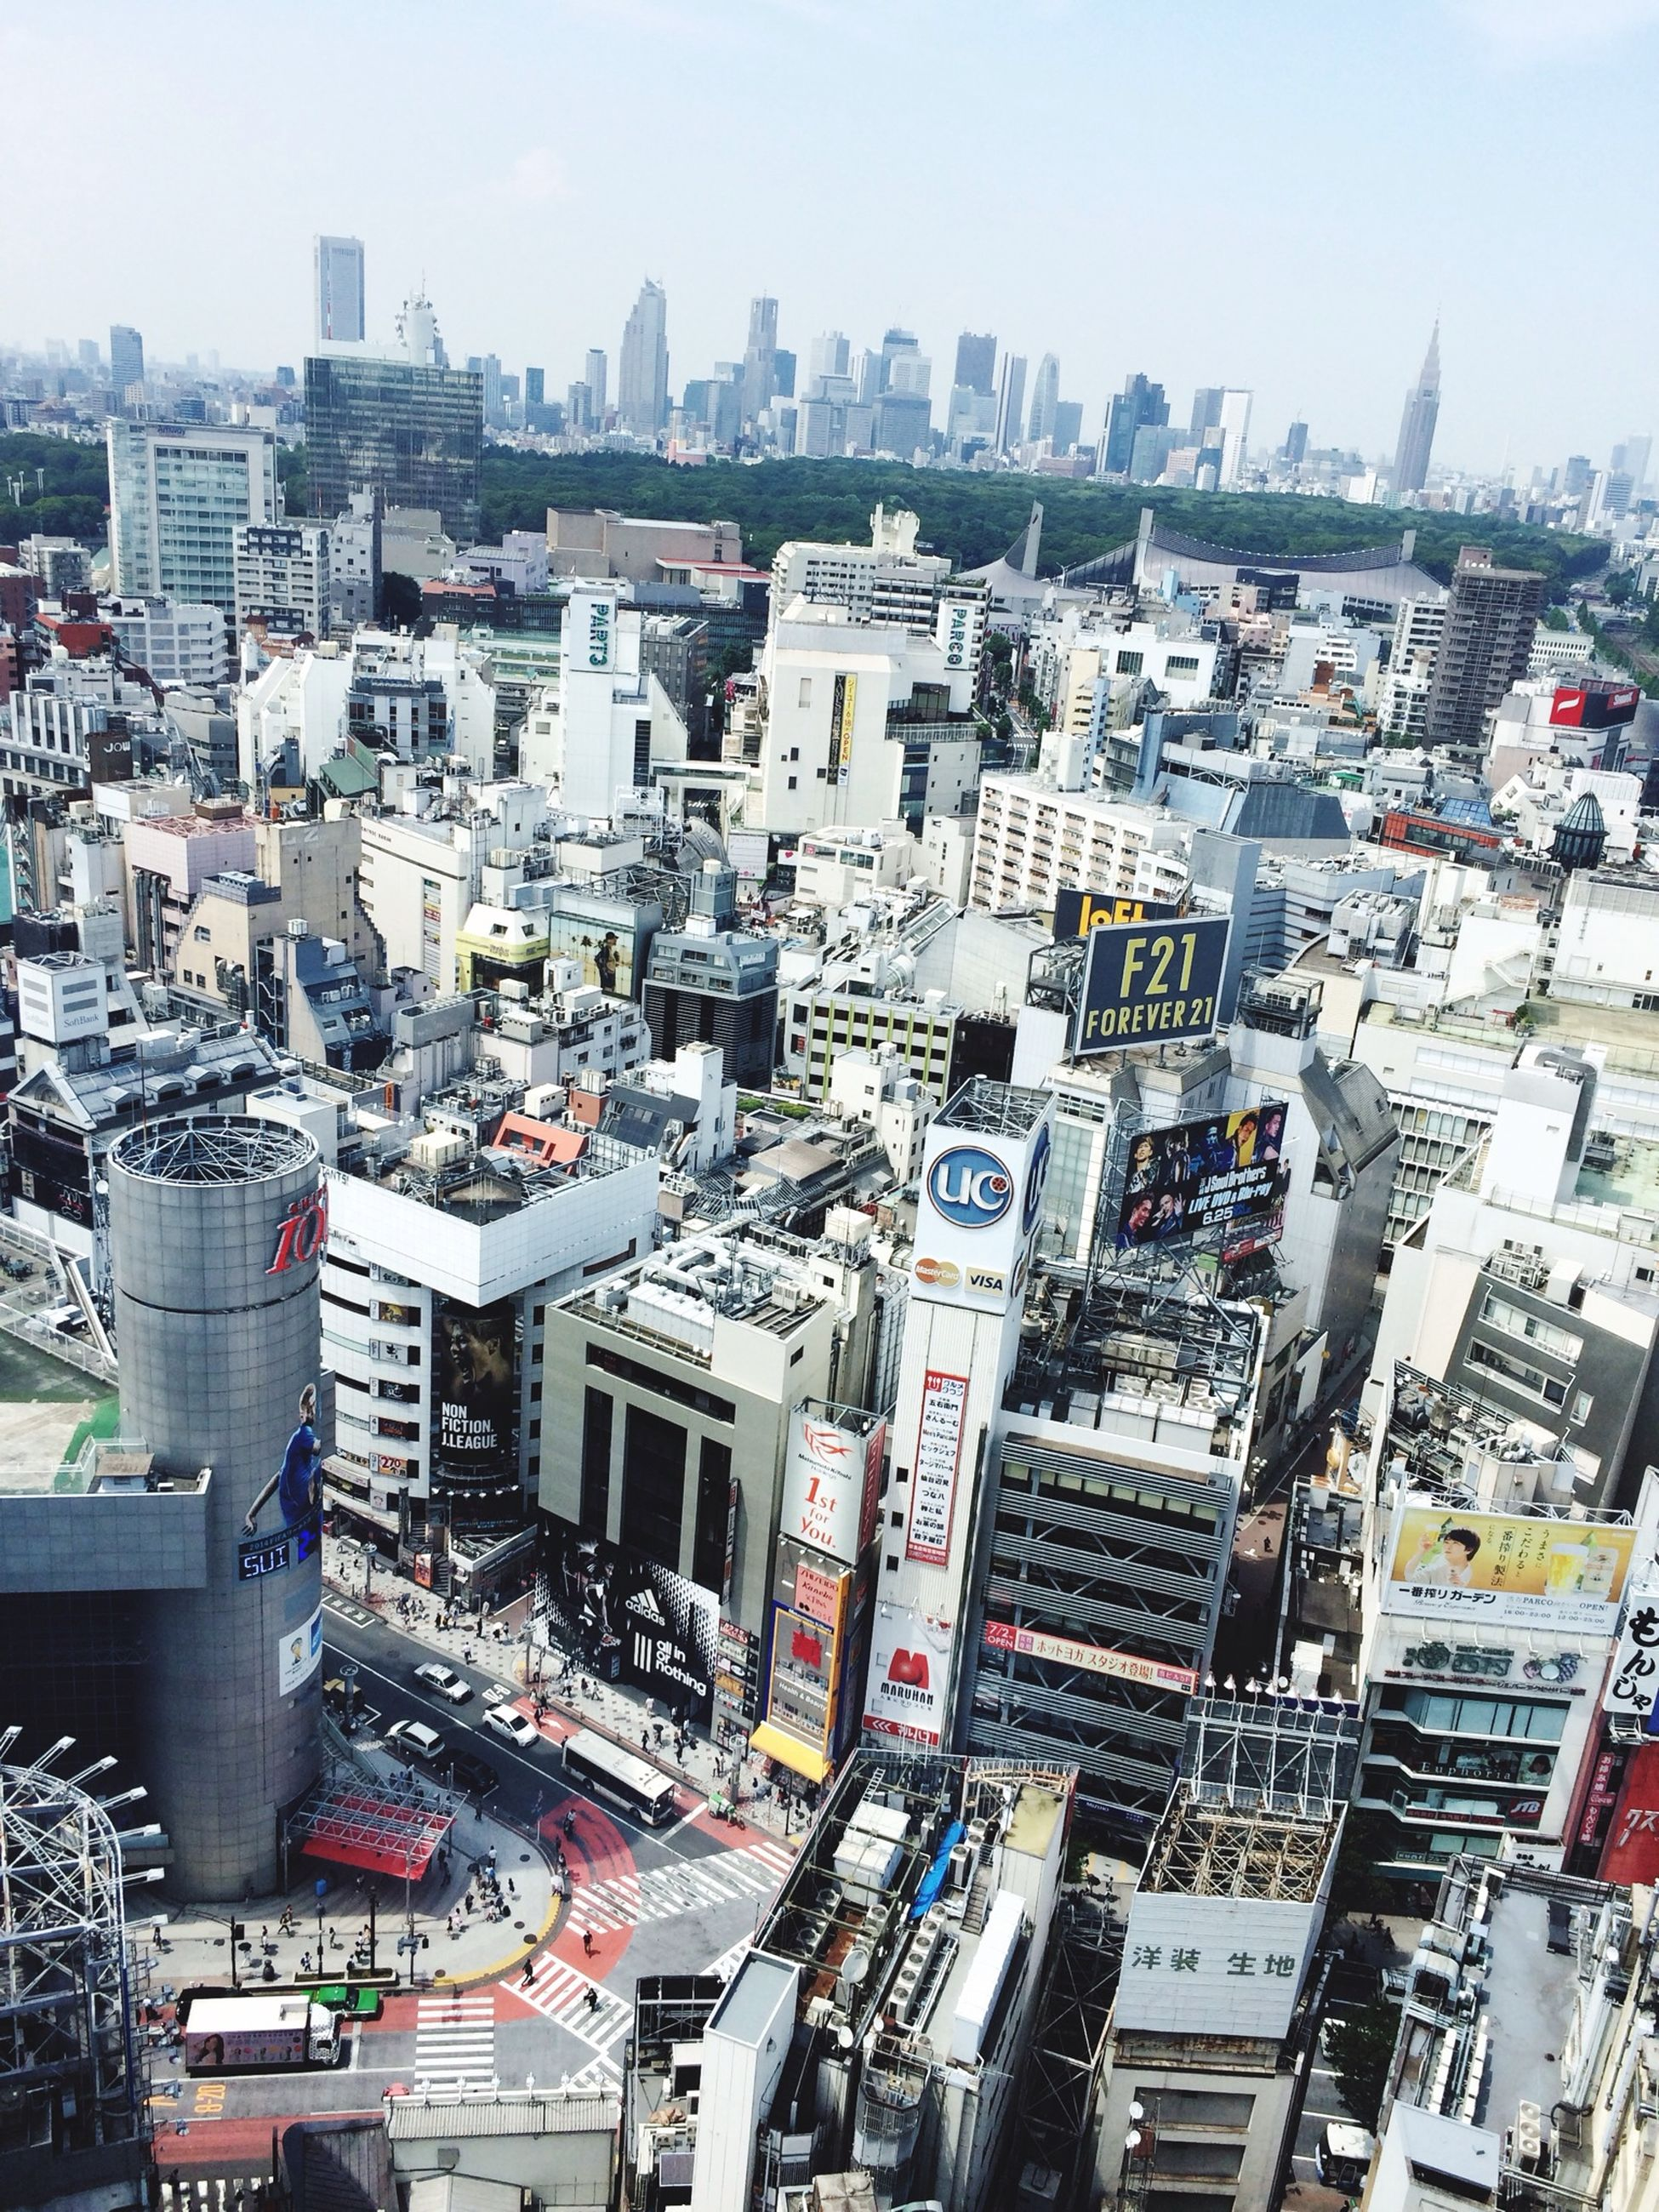 building exterior, city, architecture, built structure, cityscape, high angle view, crowded, car, city life, transportation, residential district, residential building, street, land vehicle, skyscraper, residential structure, day, mode of transport, tall - high, sky